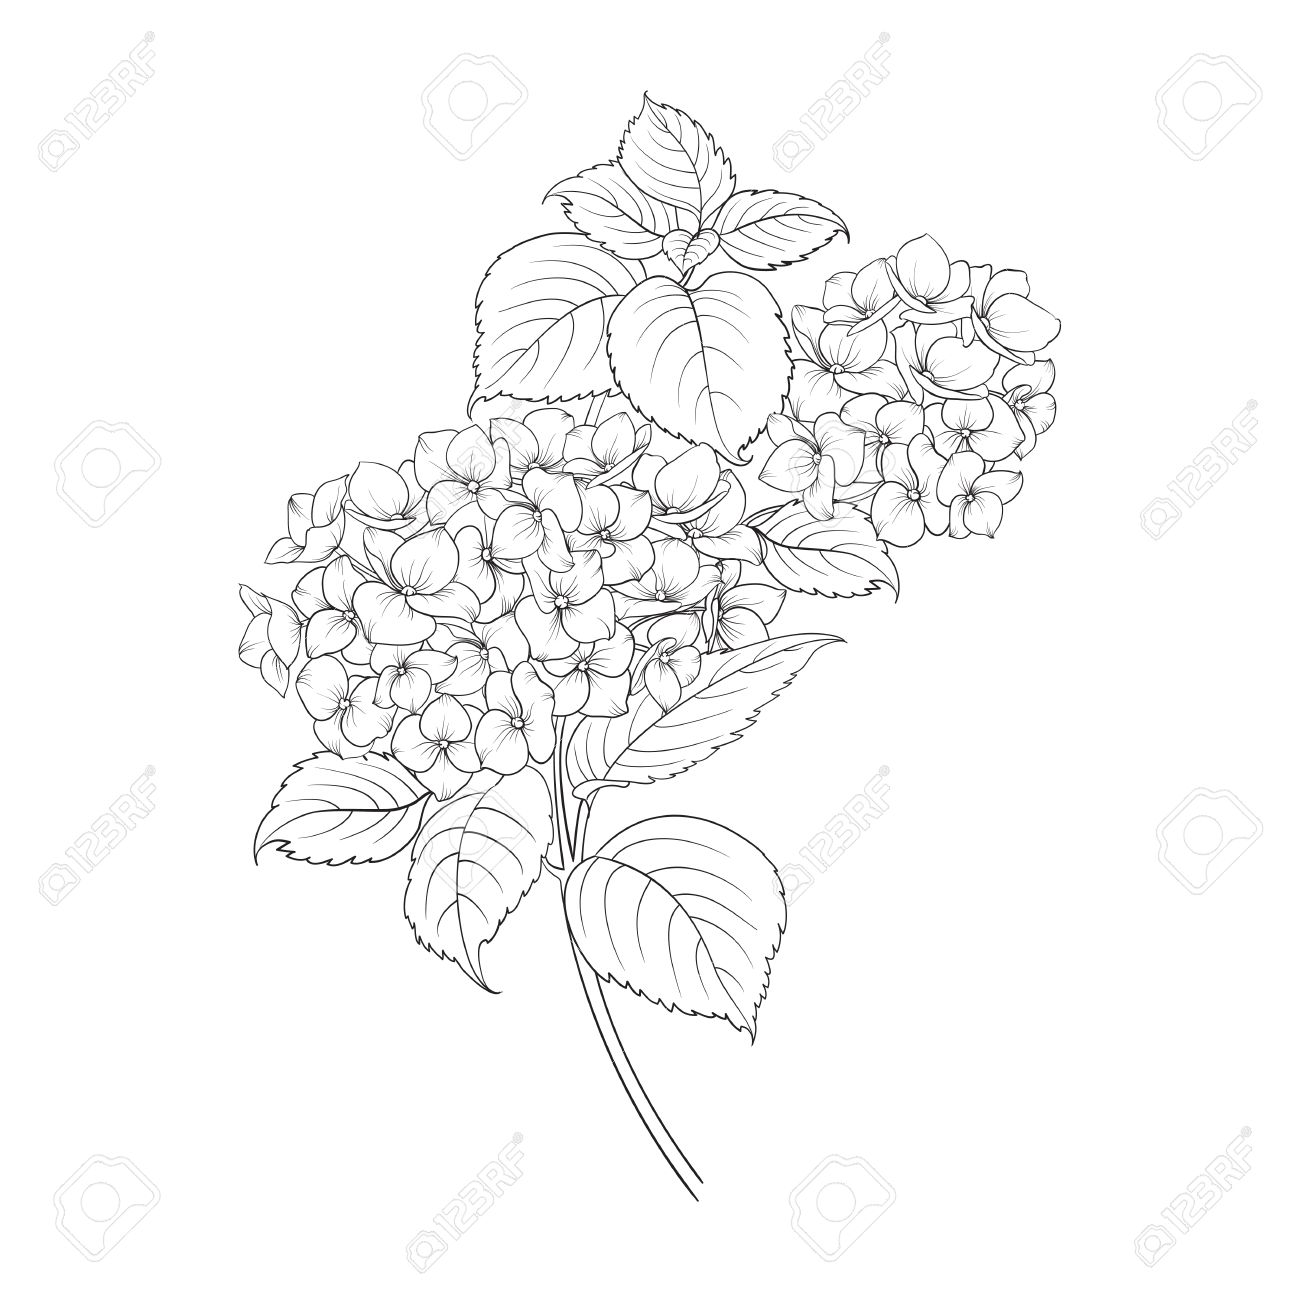 1300x1300 Blooming Flower Hydrangea On White Background. Mop Head Hydrangea